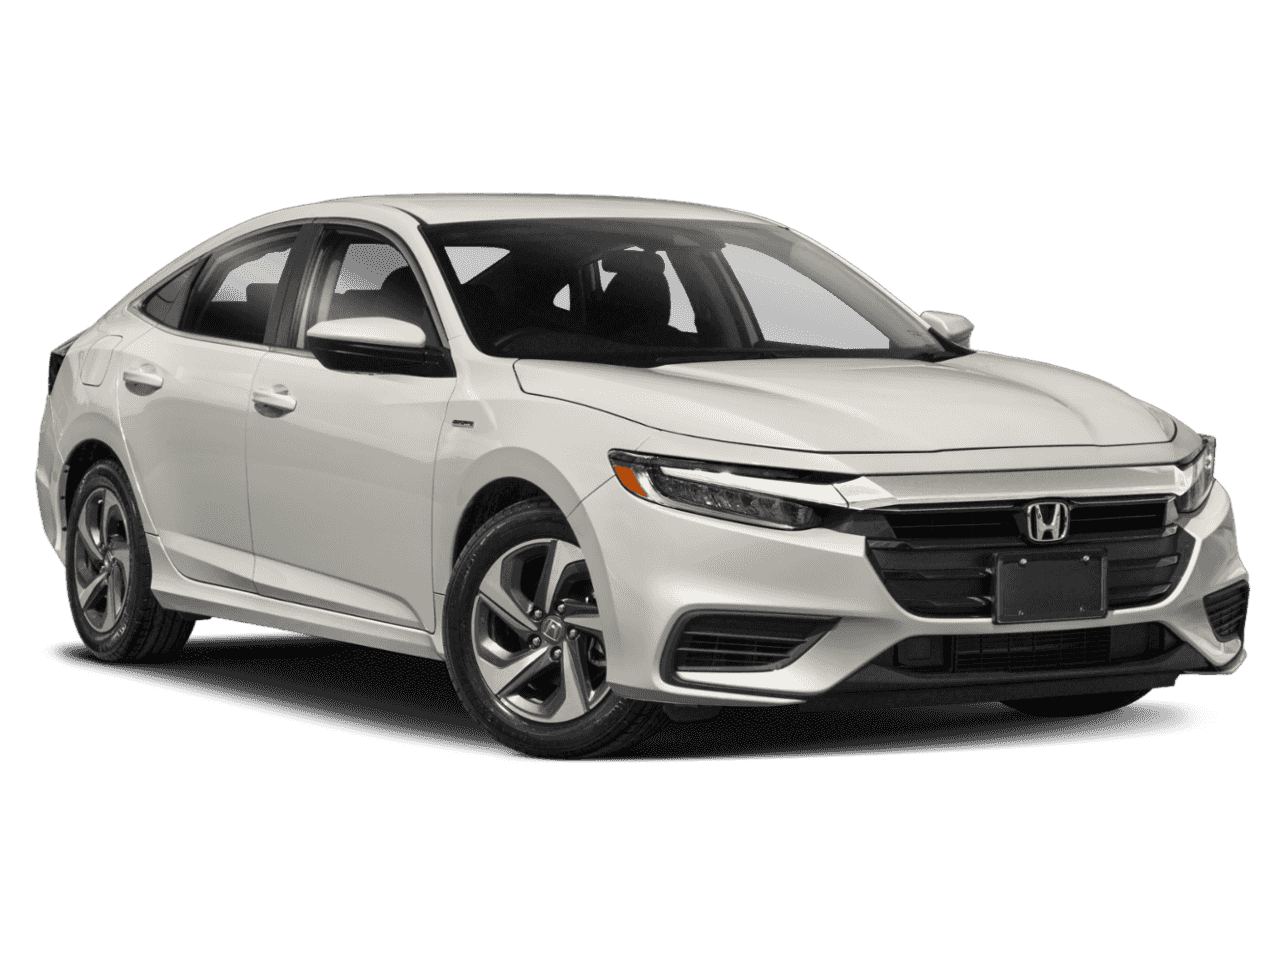 Honda Accord Lease >> Inver Grove Honda Must Go Inventory - New Honda Specials in Minneapolis MN, St. Paul and Inver ...